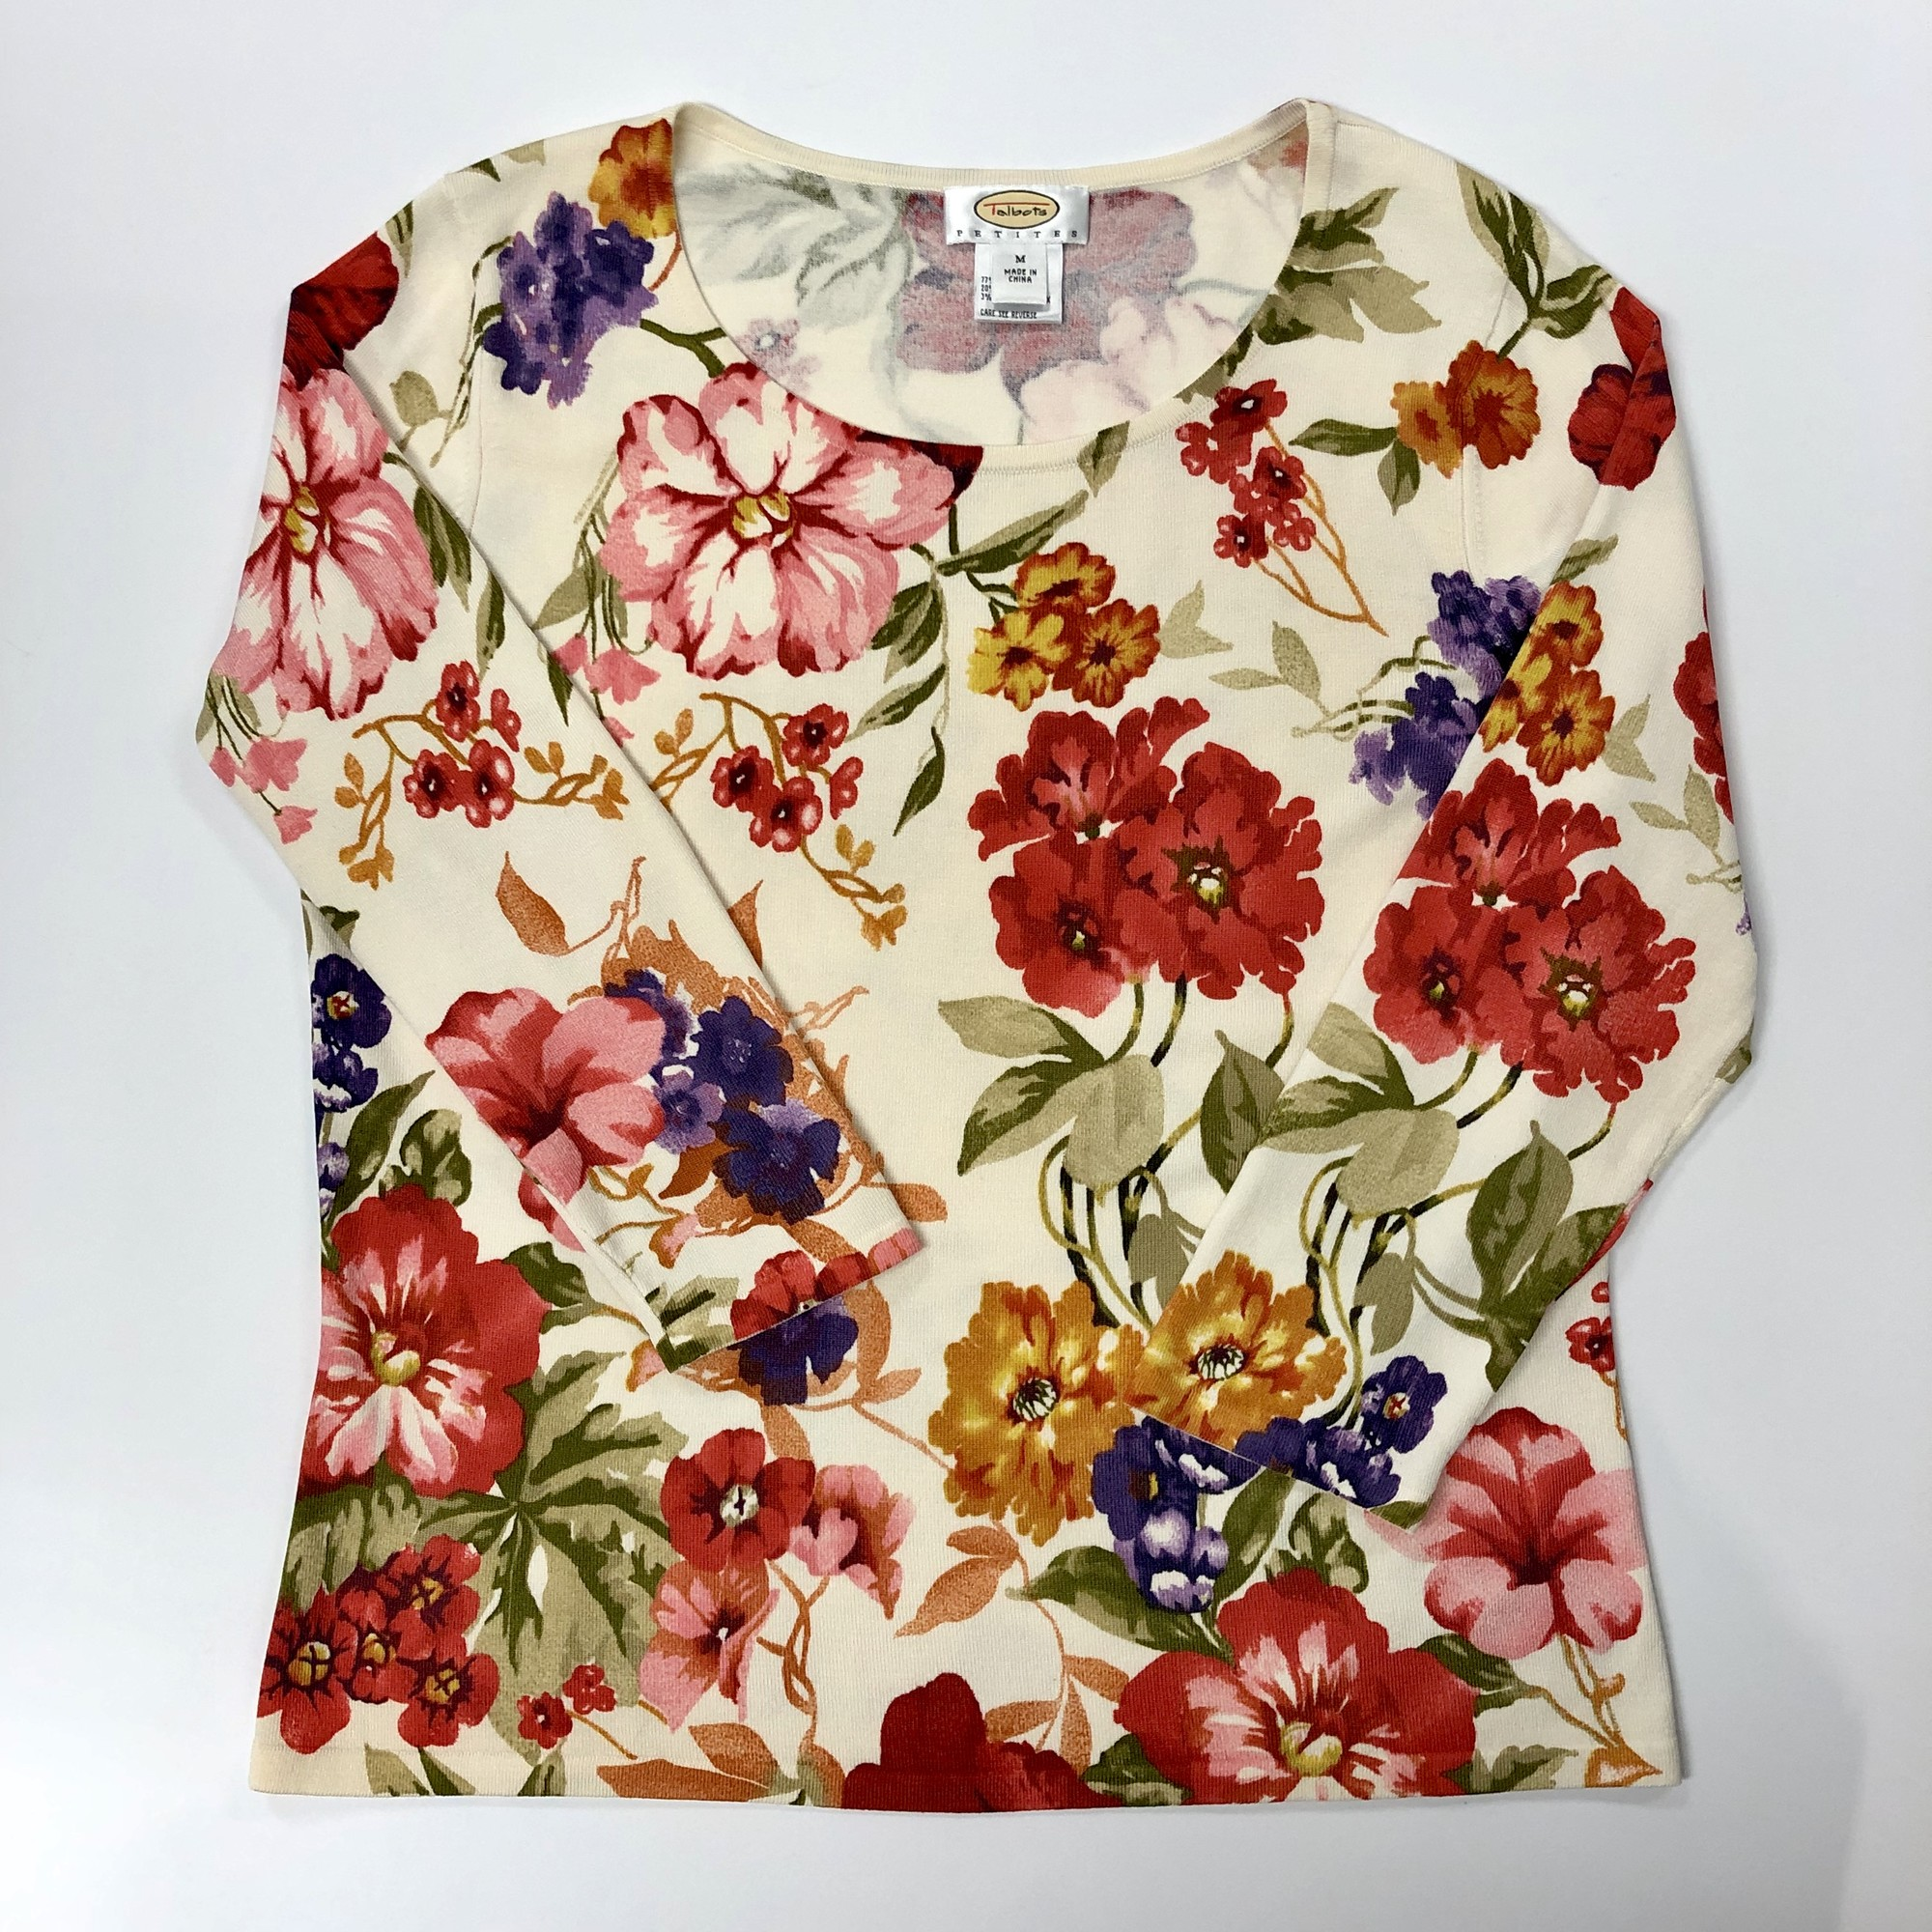 Talbots Top<br /> Design: Floral<br /> Colors: Light beige background, flower colors are reds, pinks, purples, orange, yellow, greens<br /> Size: Medium Petite<br /> Please see photos for material & care instructions